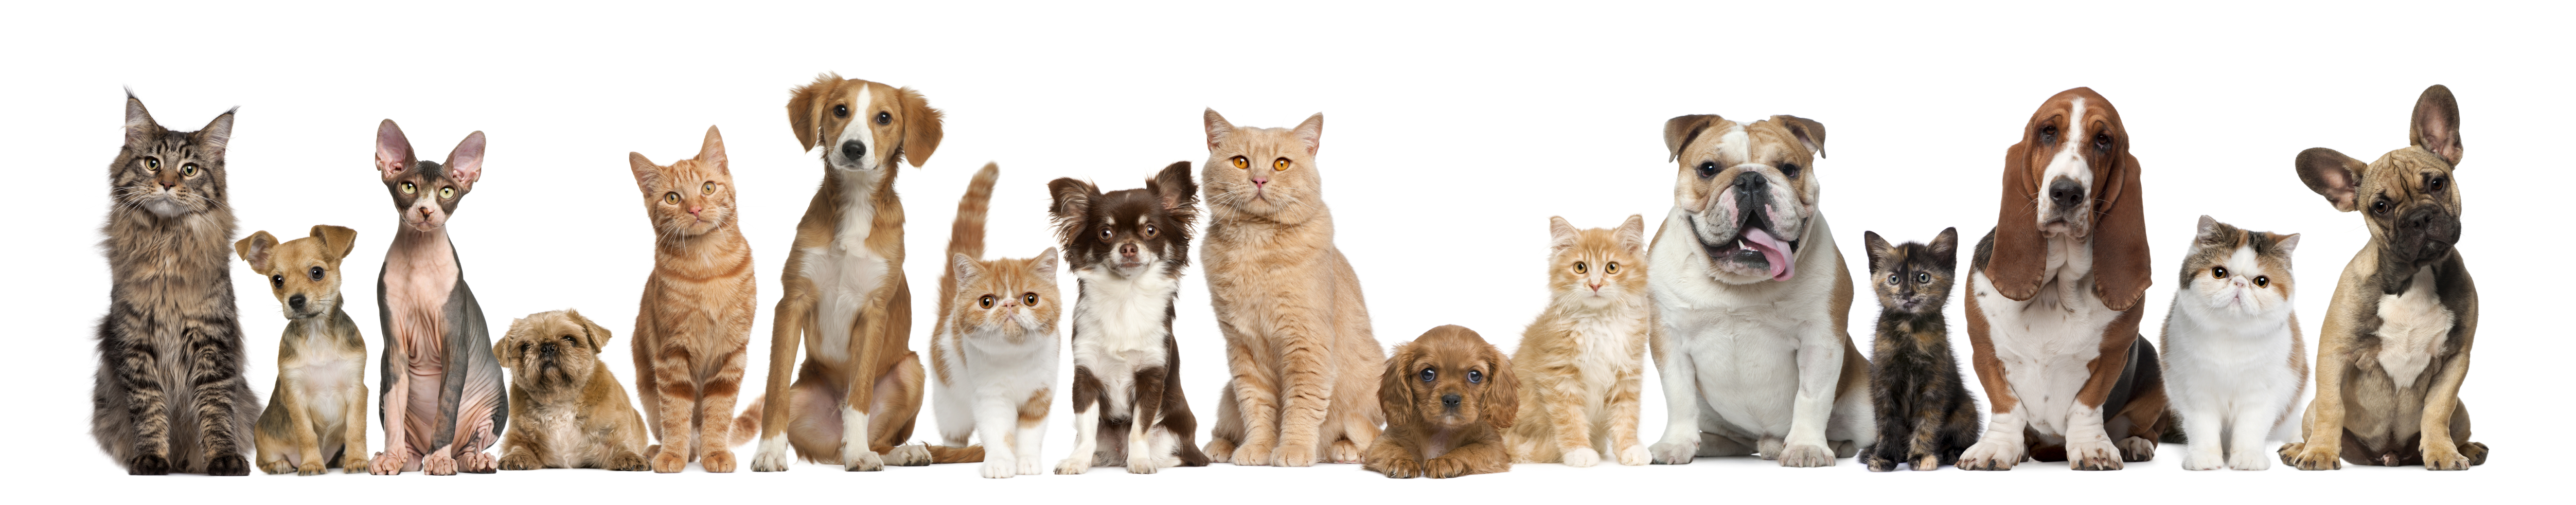 Cat And Dog Wallpaper Free Download Cat Drooling Breathing Difficulty